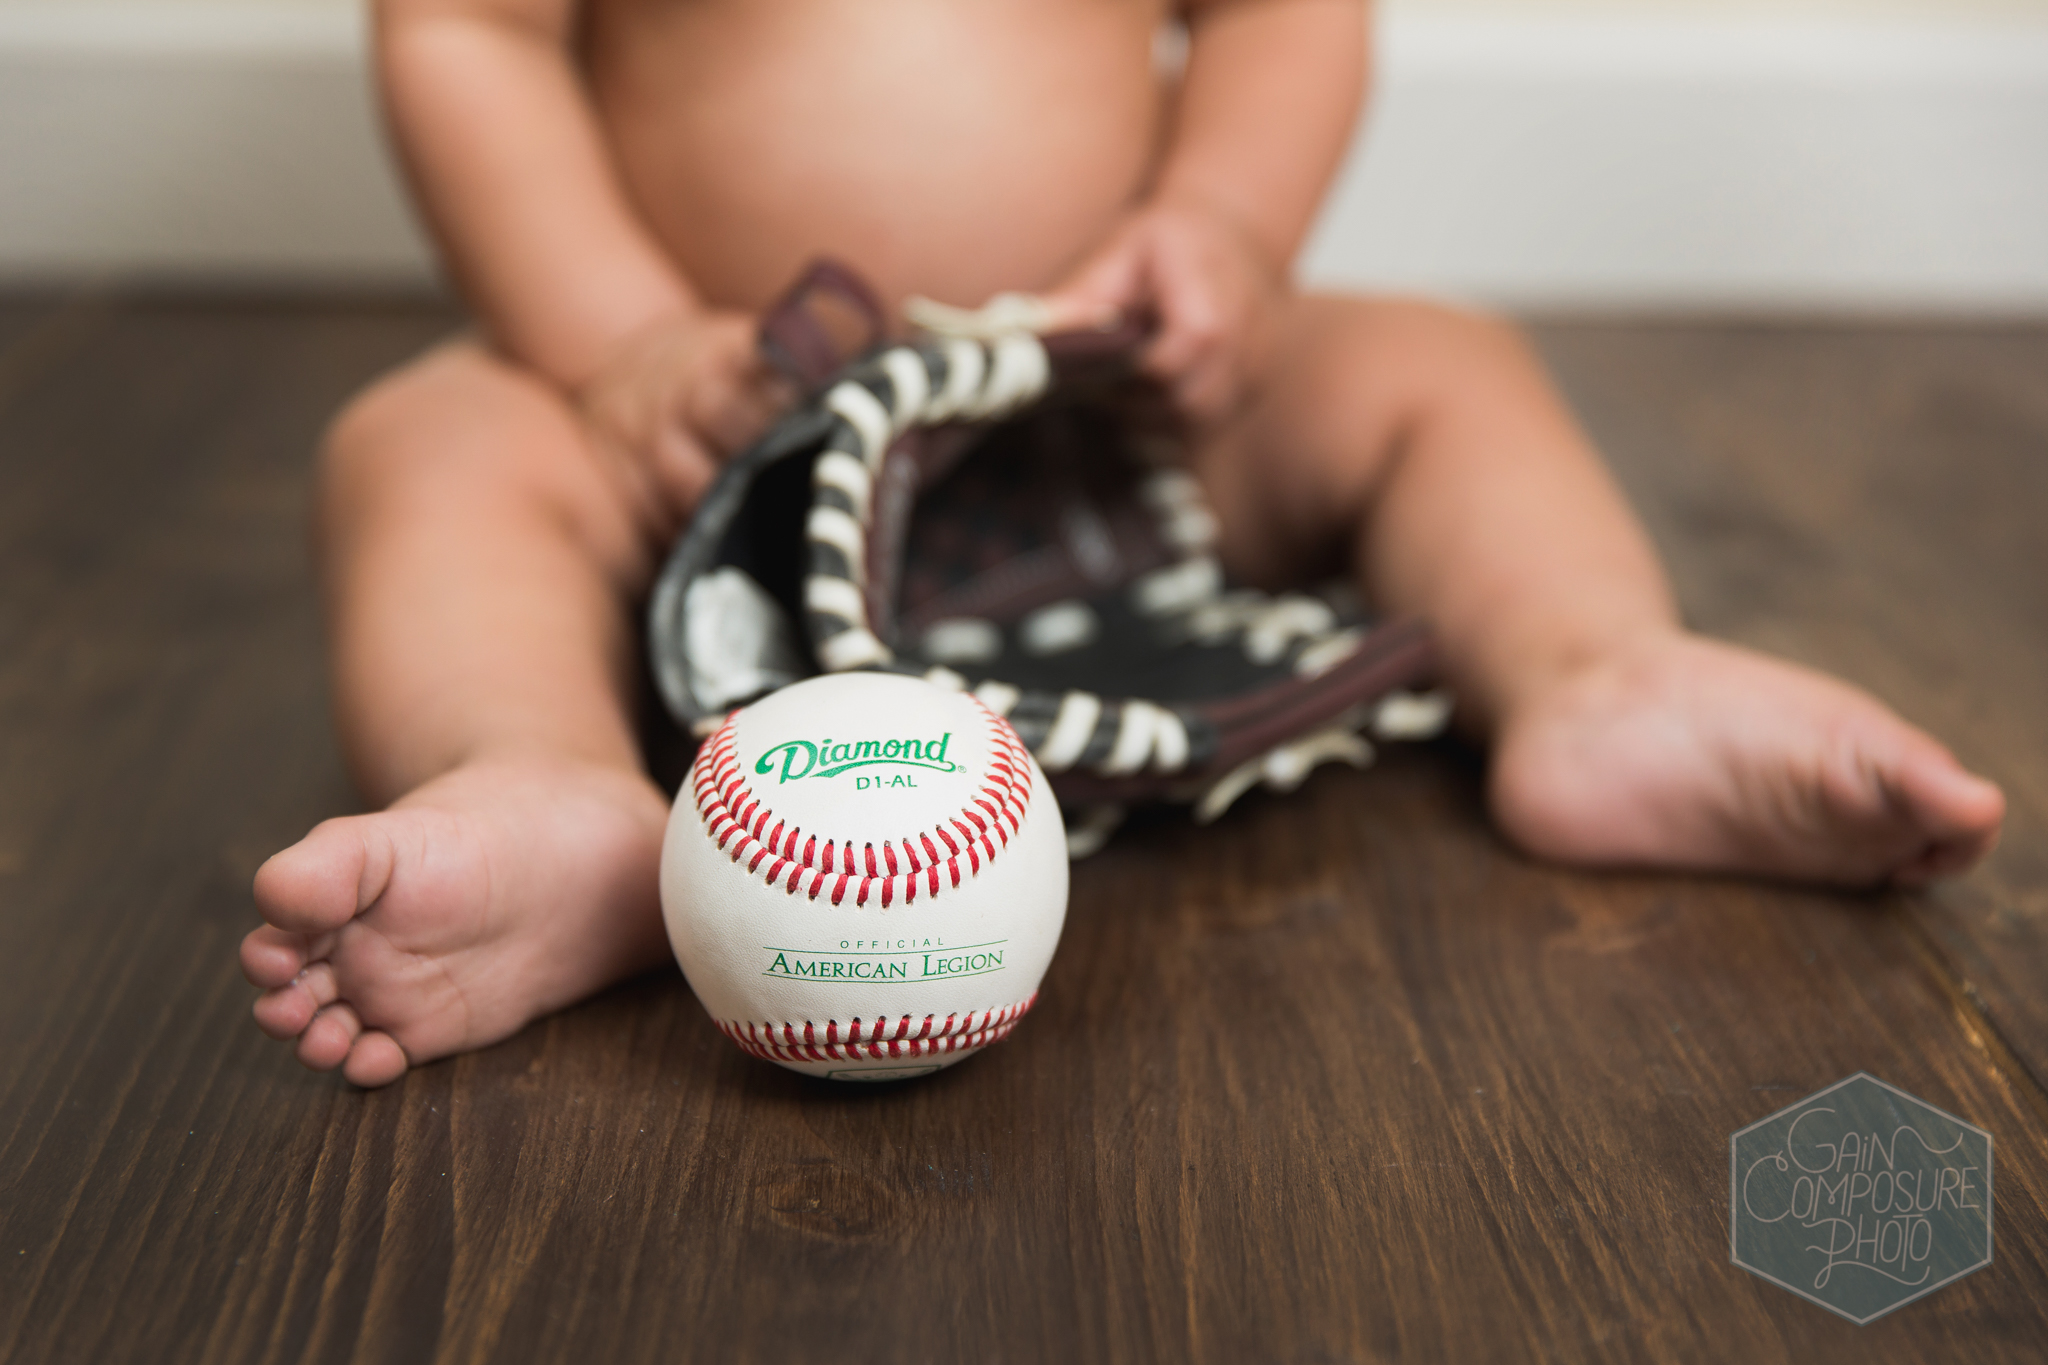 8 month old with ball and glove